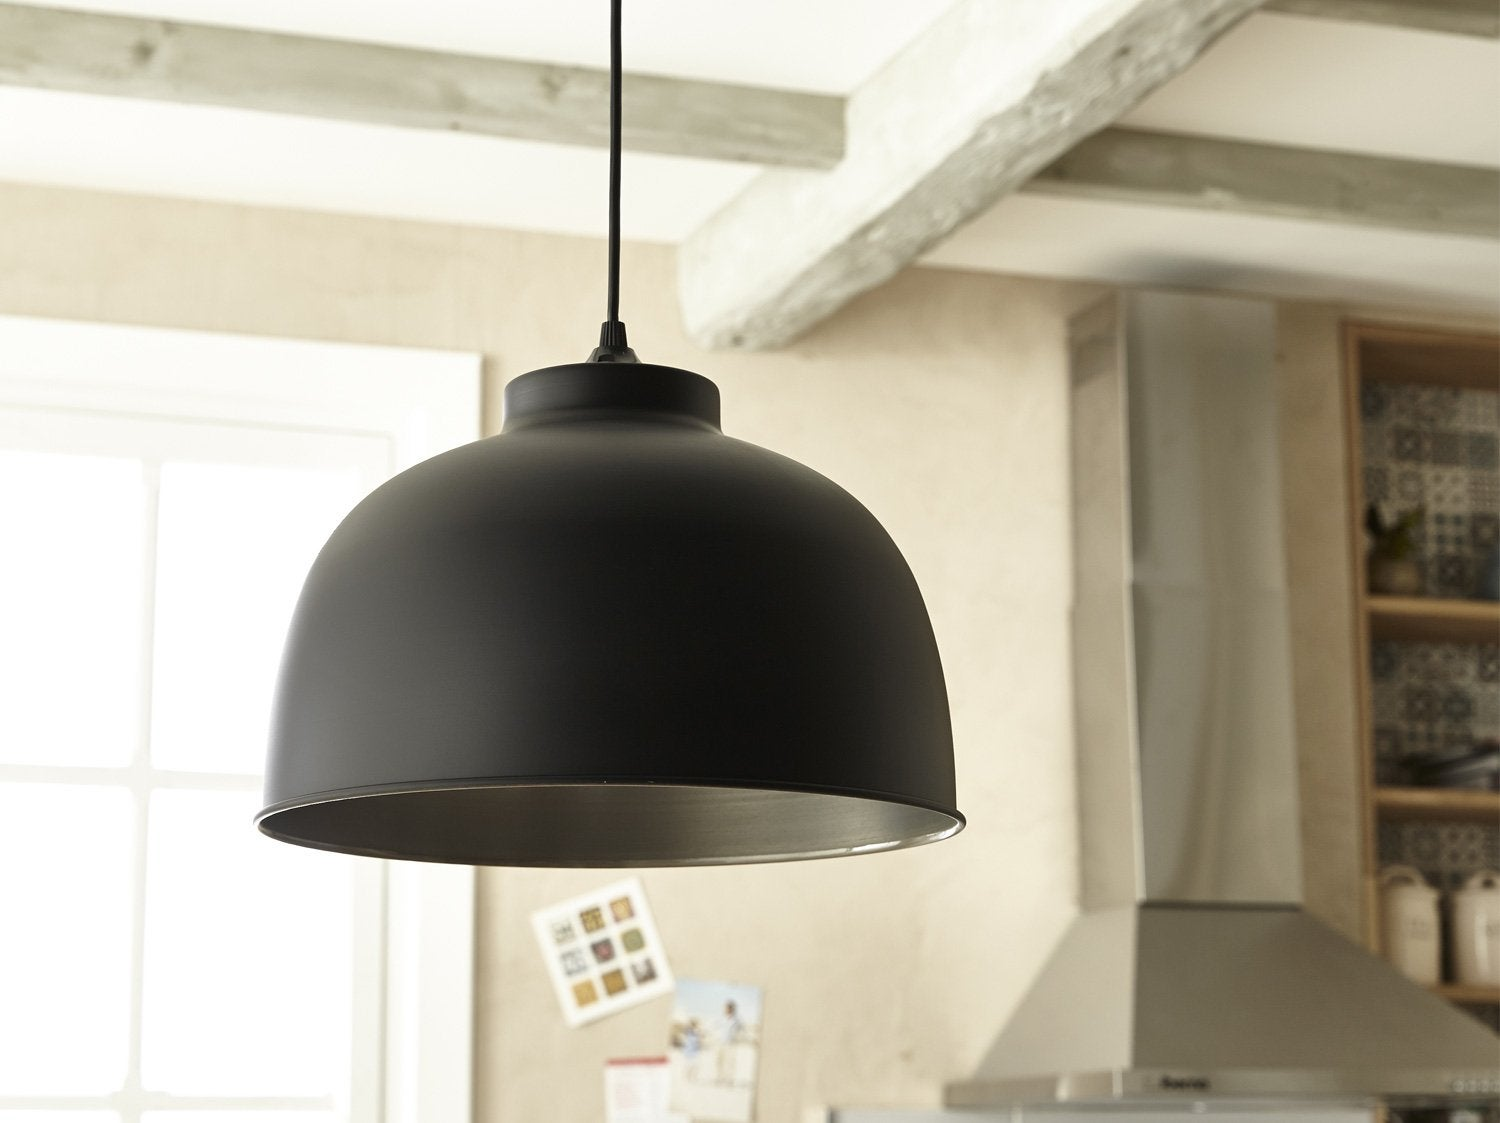 luminaire cahors luminaire cuisine with luminaire cahors top suspension e w diametre cm braga. Black Bedroom Furniture Sets. Home Design Ideas